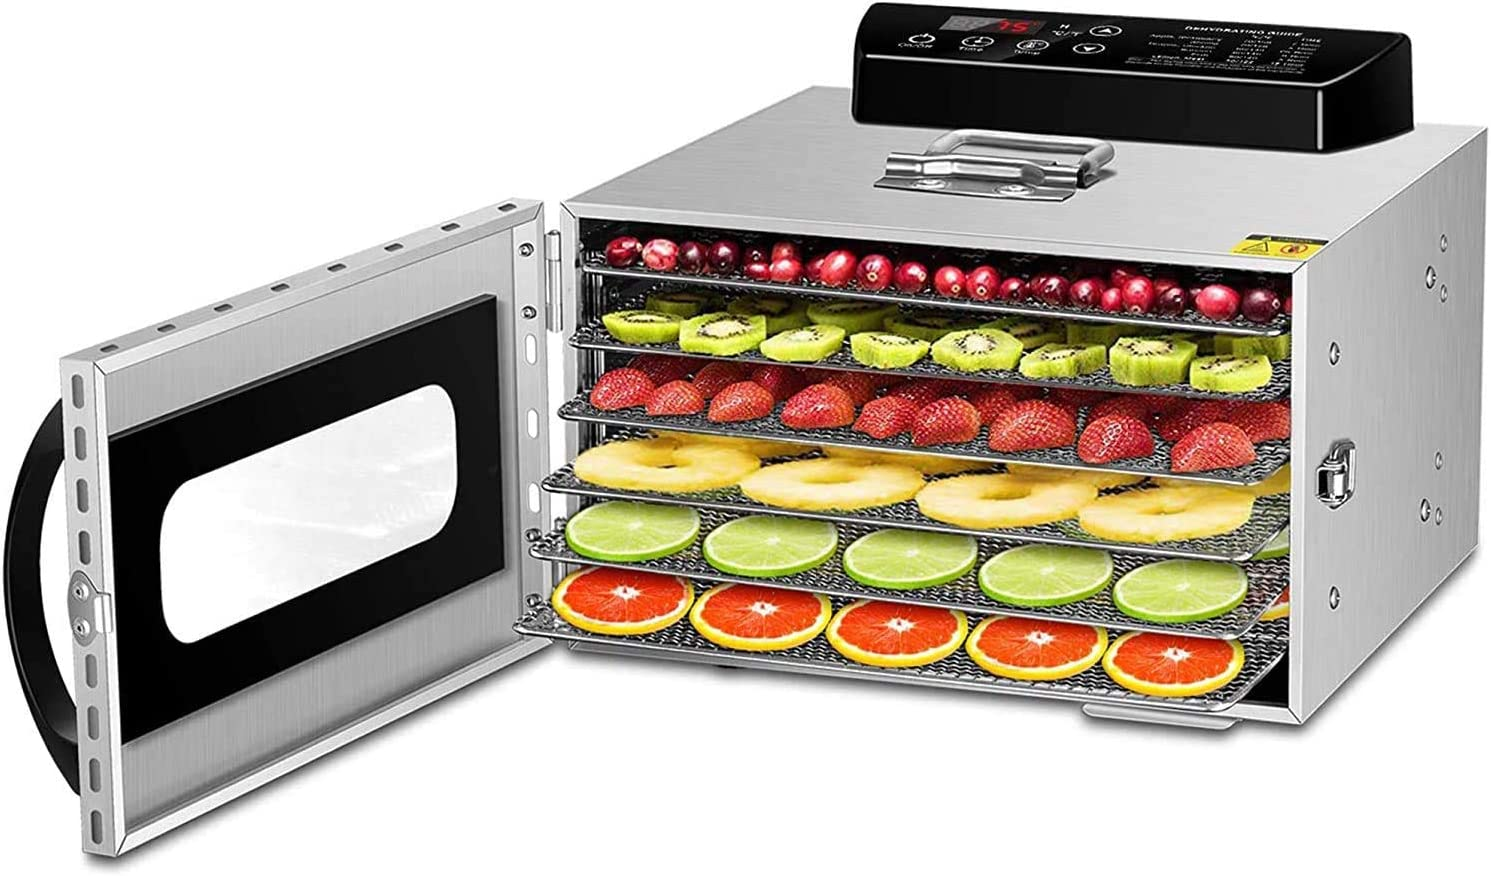 METAWELL Premium Food Dehydrator Machine, 6-Tray Food Dryer Keep Warm Function Stainless Steel Digital Timer and Temperature Control for Meat, Jerky, Herb, Beef, Fruit, Nuts, Herbs and Vegetables